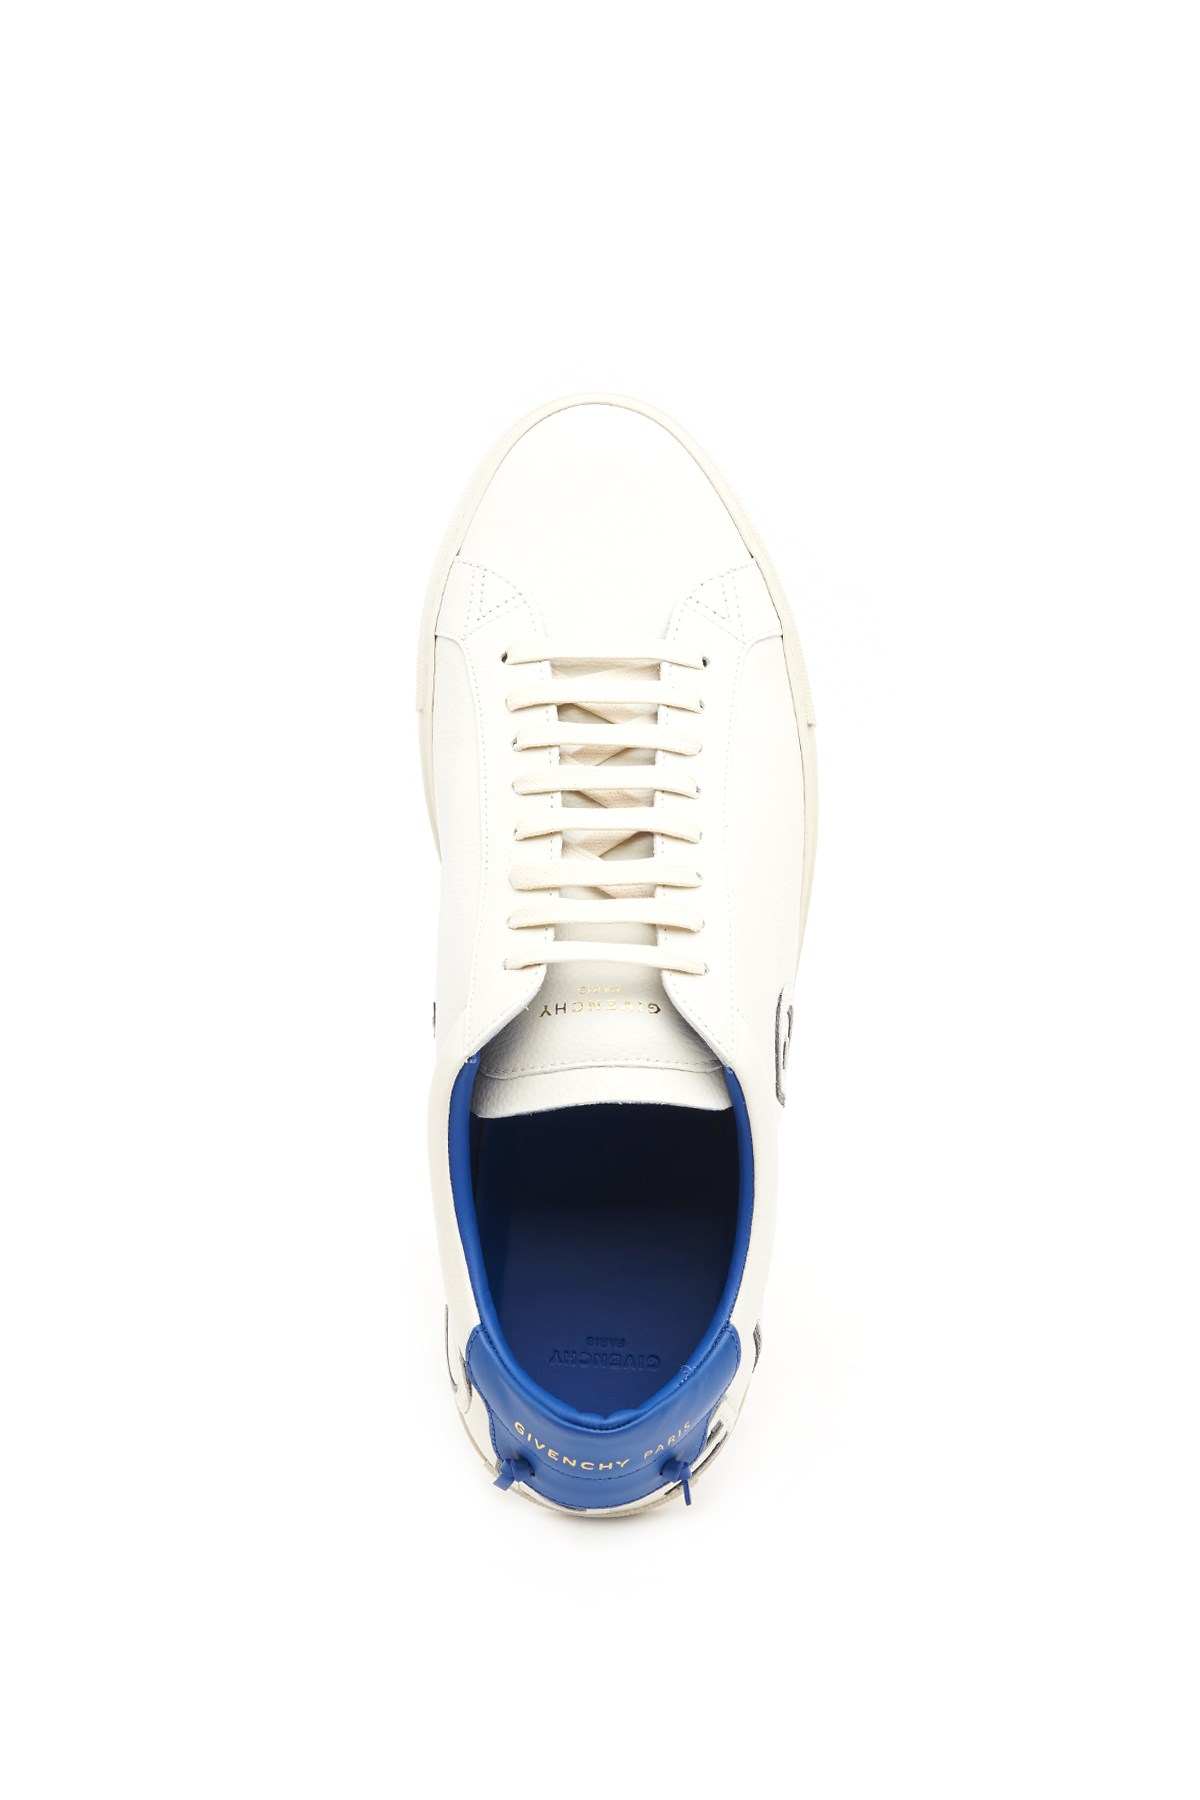 7e2158c56 givenchy 'givenchy reverse' sneakers available on julian-fashion.com ...